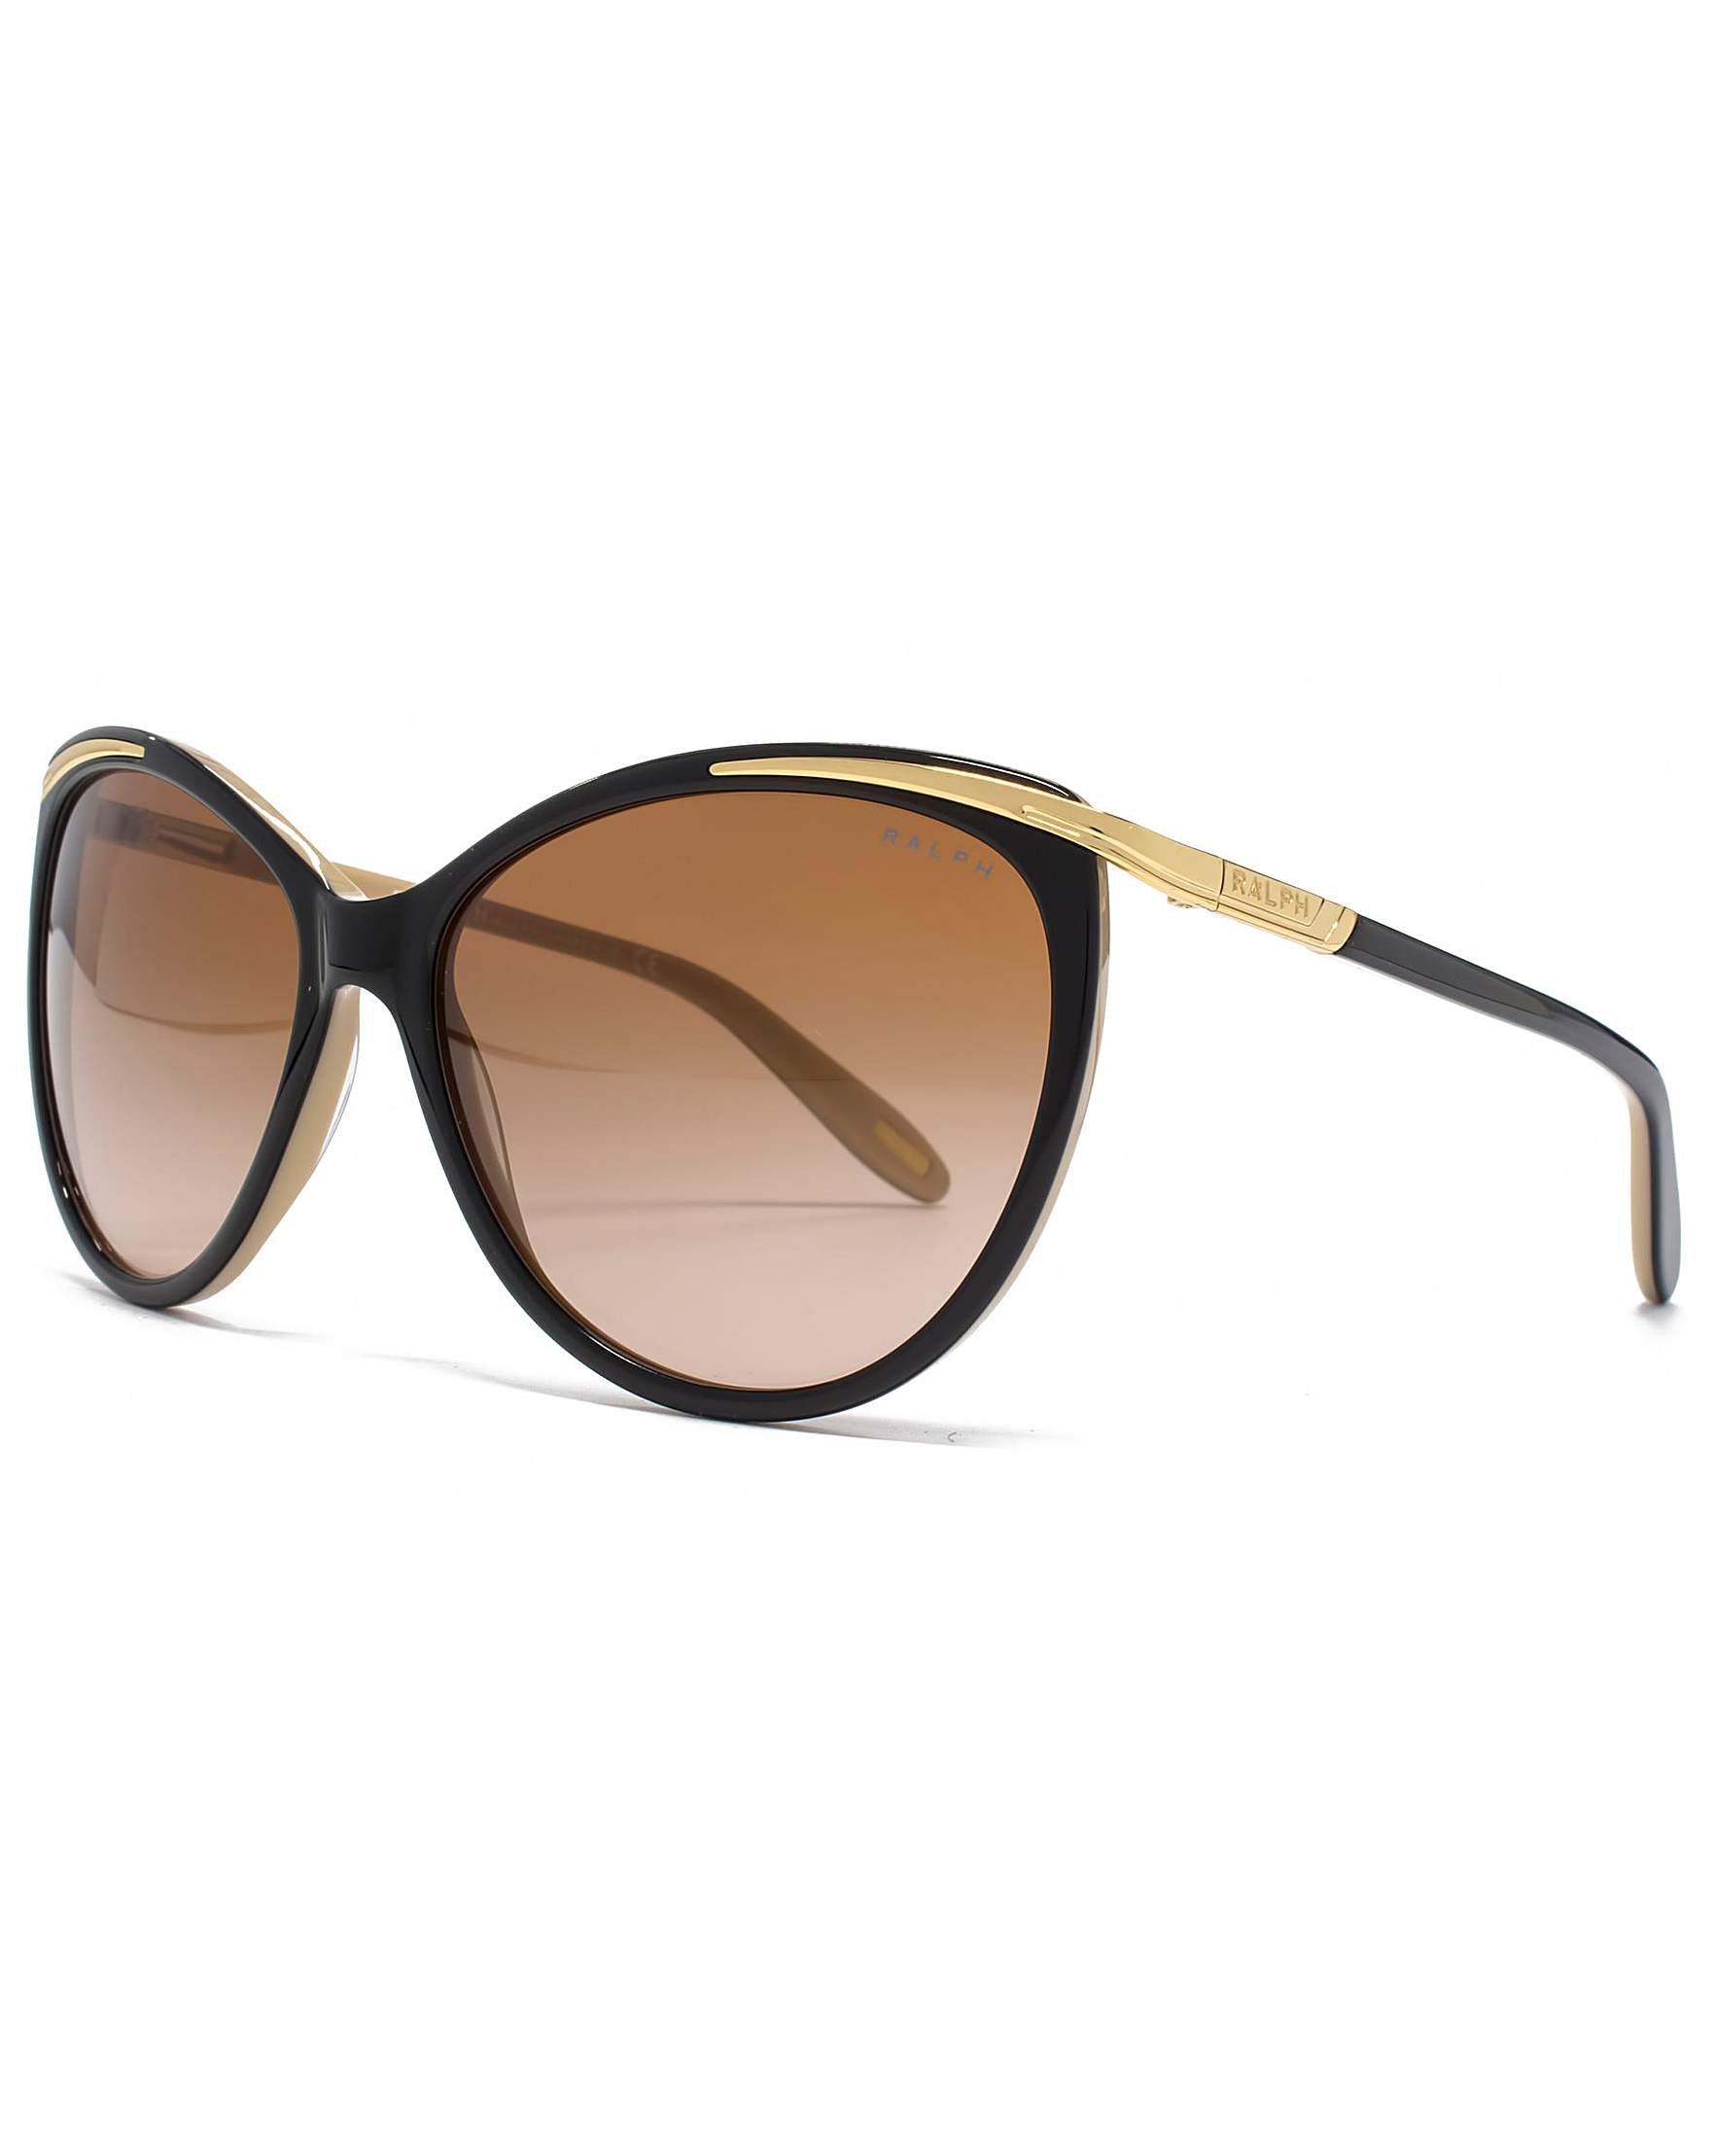 9d17e627daf3 Ralph By Ralph Lauren Cateye Sunglasses | Oxendales